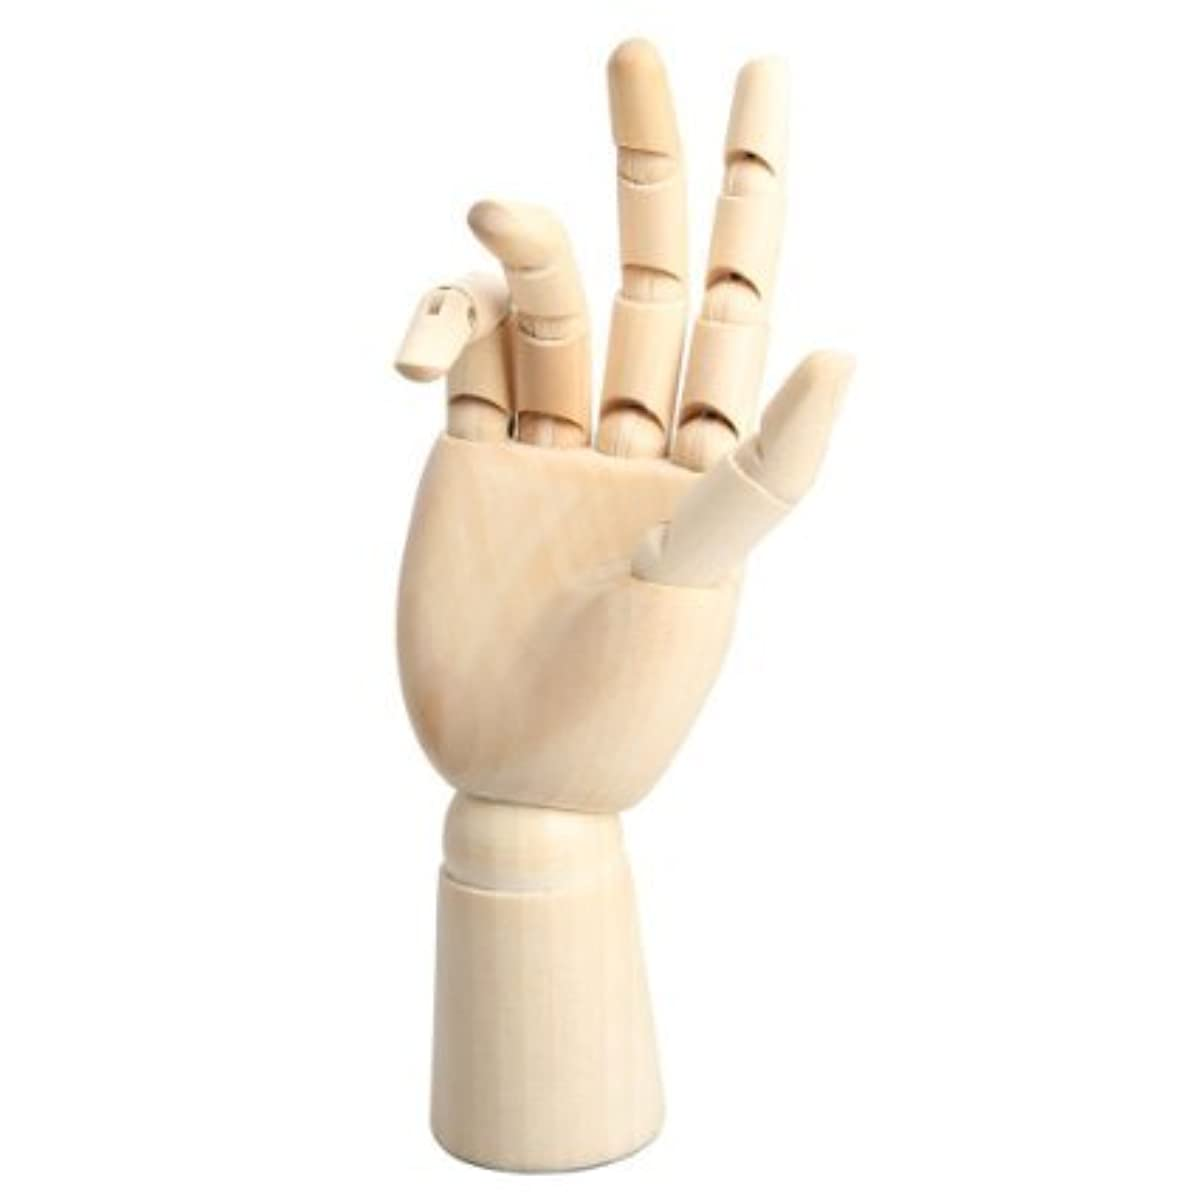 Mannequin Hand - Yookat Wood Art Mannequin Hand Model - Perfect for Drawing, Sketch, etc.(Male Hand)